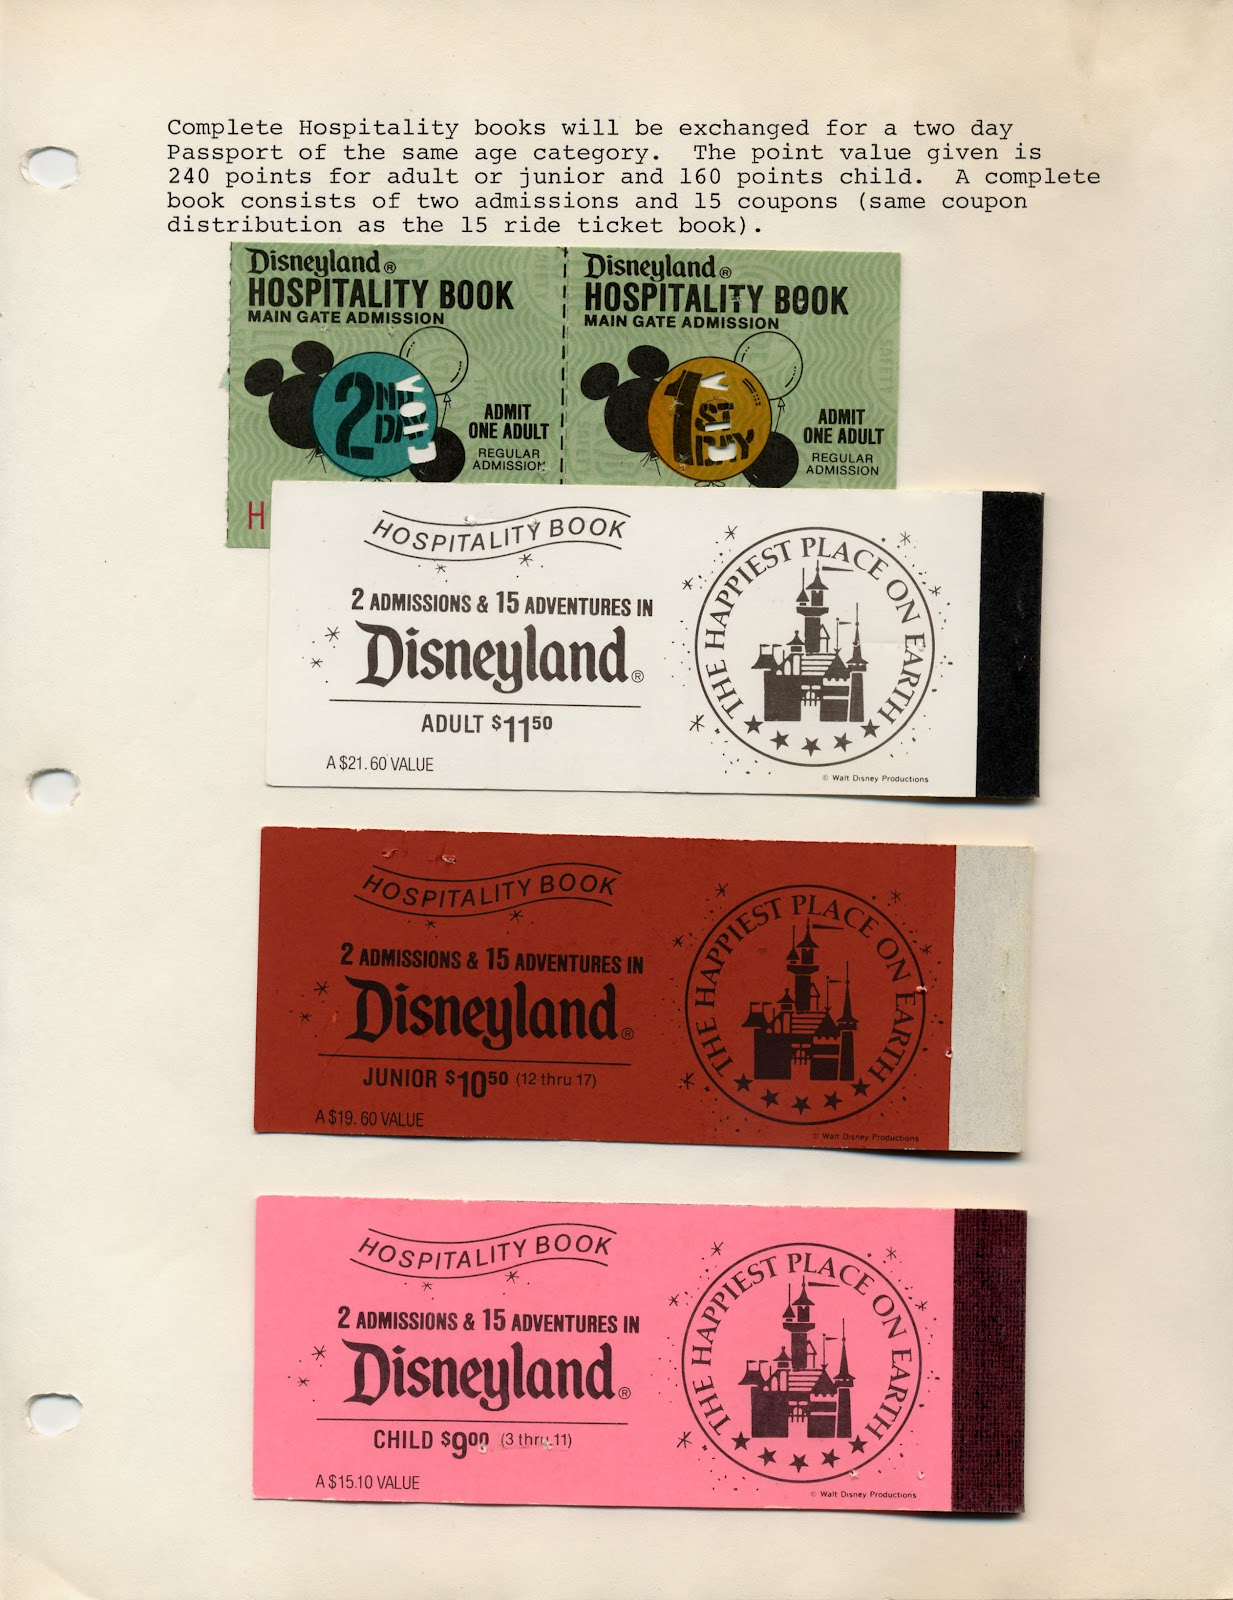 Disneyland Ticket Exchange Policy Part 3 - Complete Book Exchanging ...